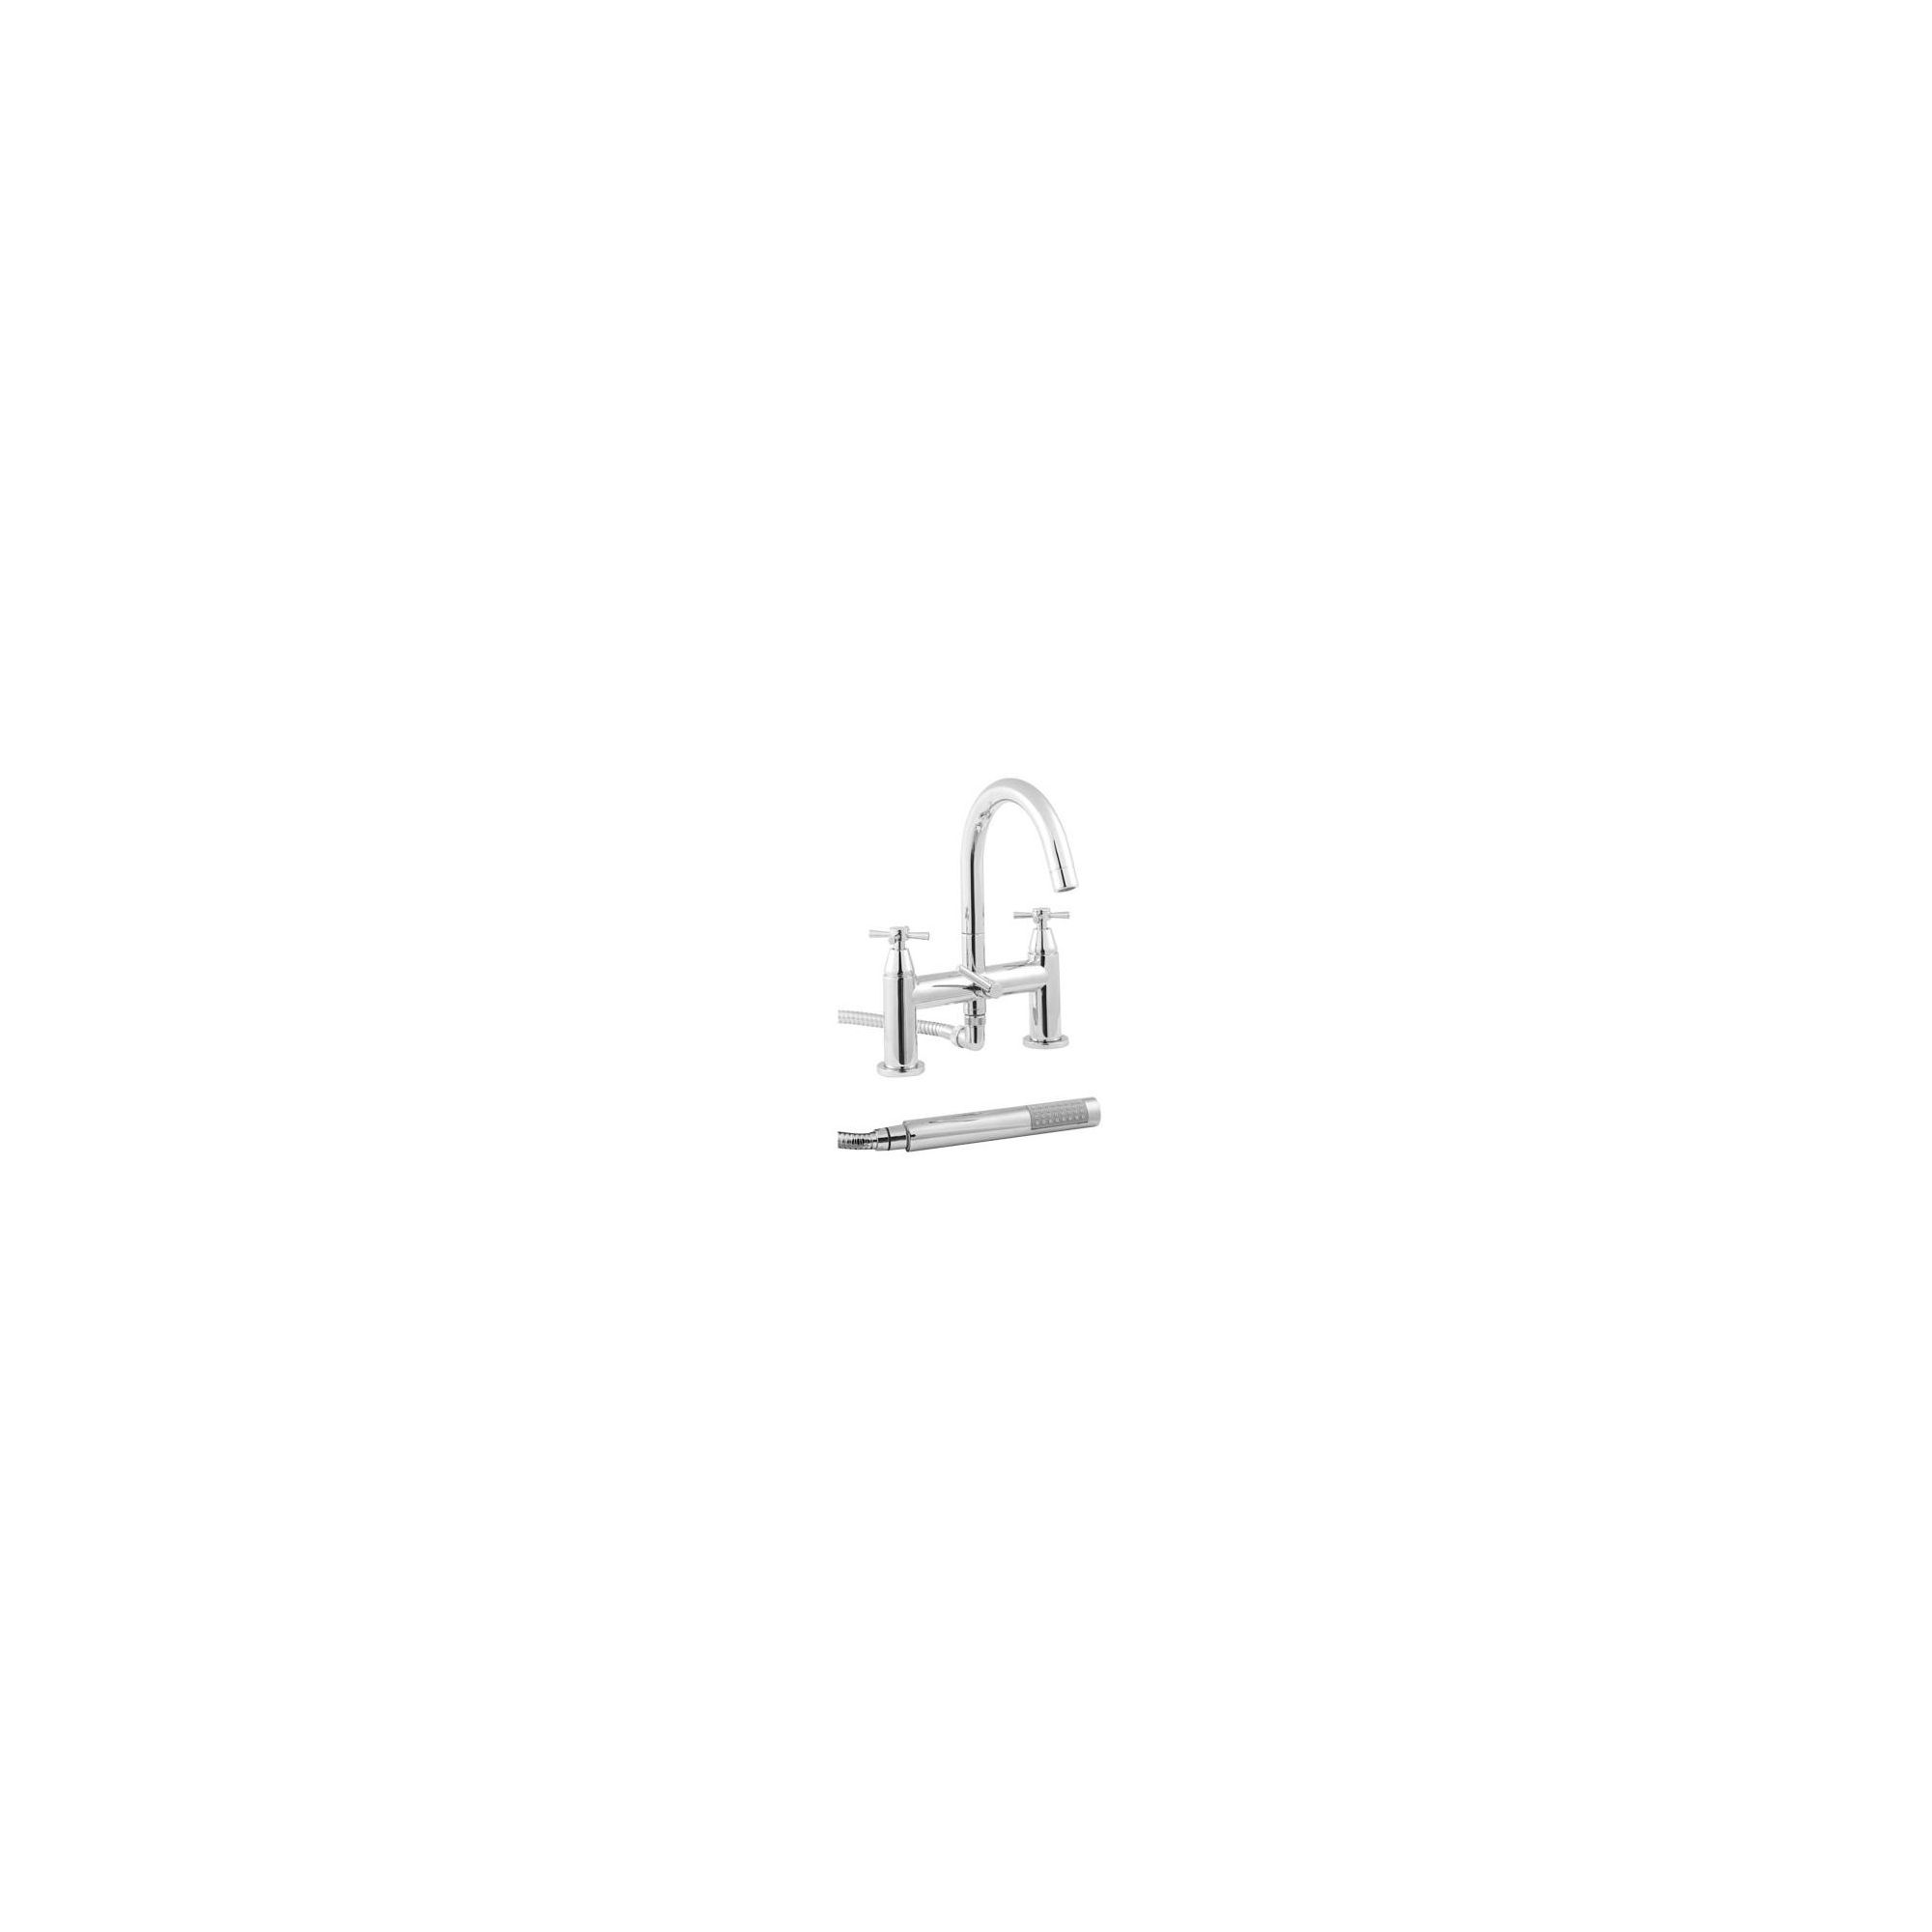 Twyford Rival Pillar Mounted Bath Shower Mixer Tap Chrome at Tesco Direct